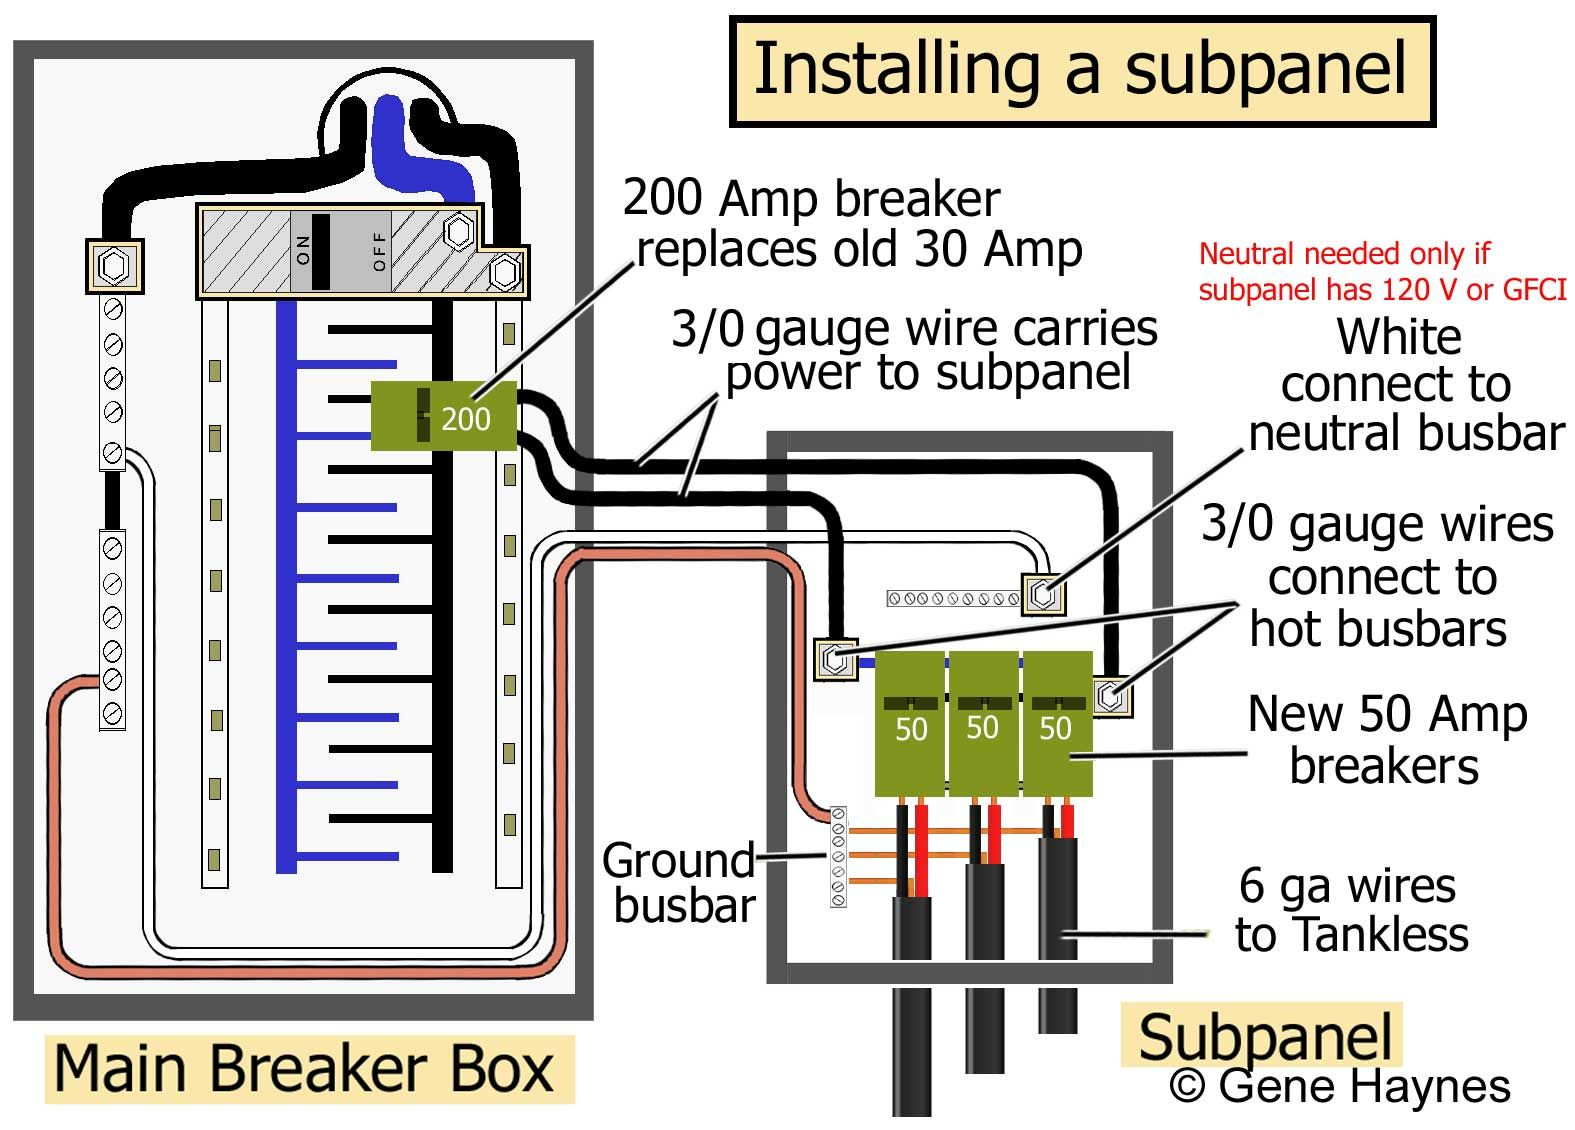 How to install a subpanel how to install main lug wiring diagram how to install a subpanel how to install main lug wiring diagram cheapraybanclubmaster Images